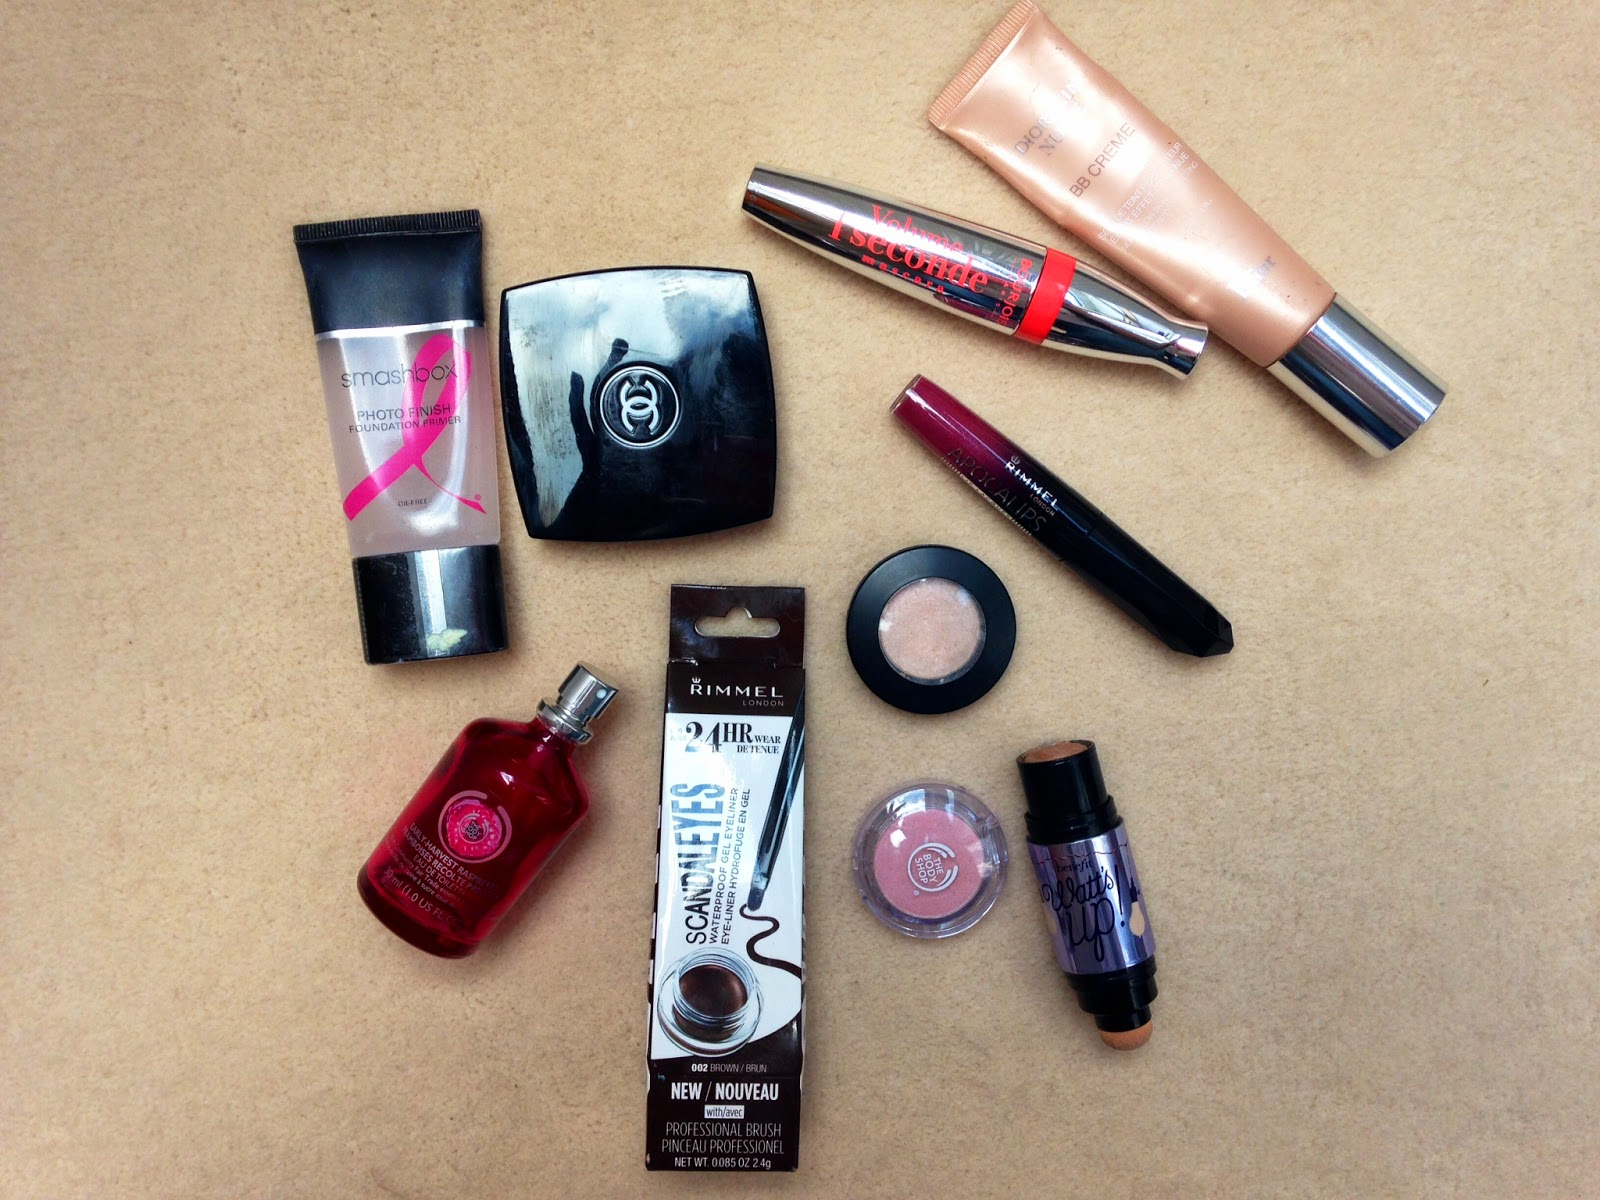 Smashbox, Primer, Chanel, Powder, Bourjois, Apocalips, Body Shop, Dior, BB Cream